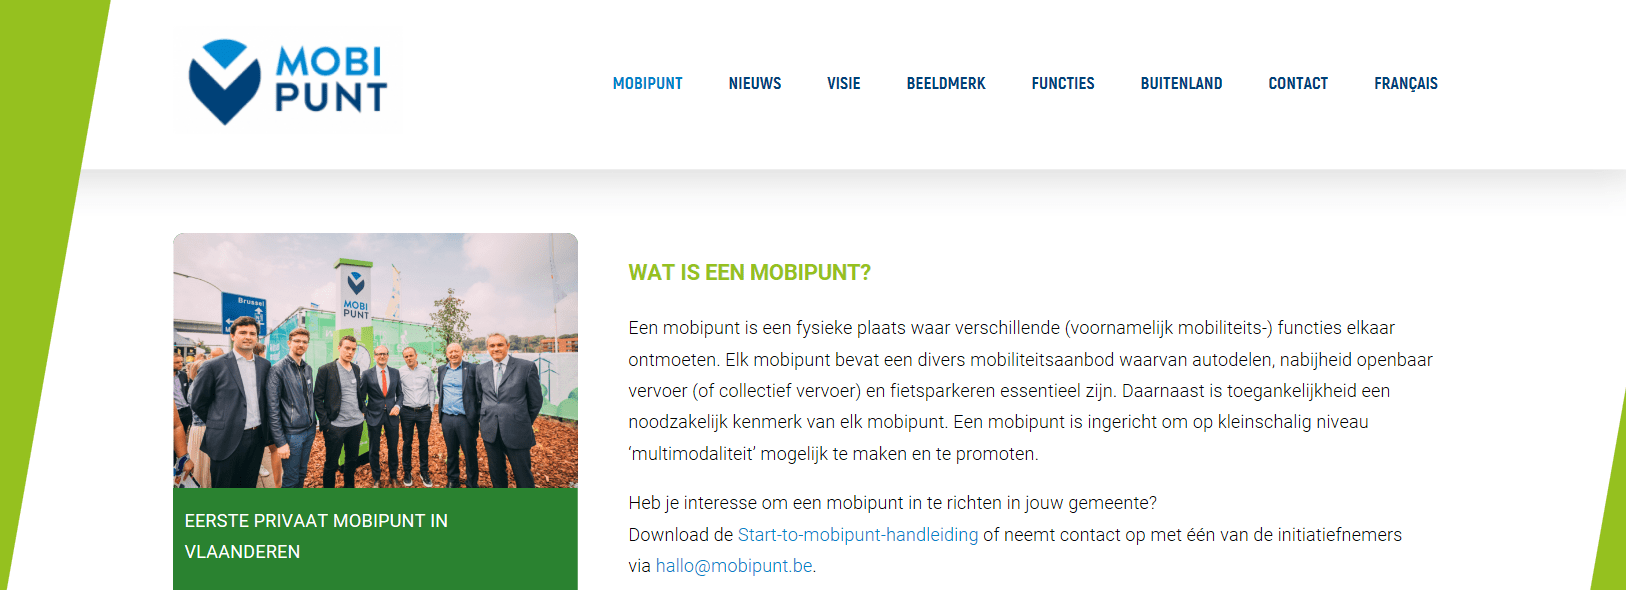 Share Websites Share North Project Launches Mobipunt Websites In Belgium And The